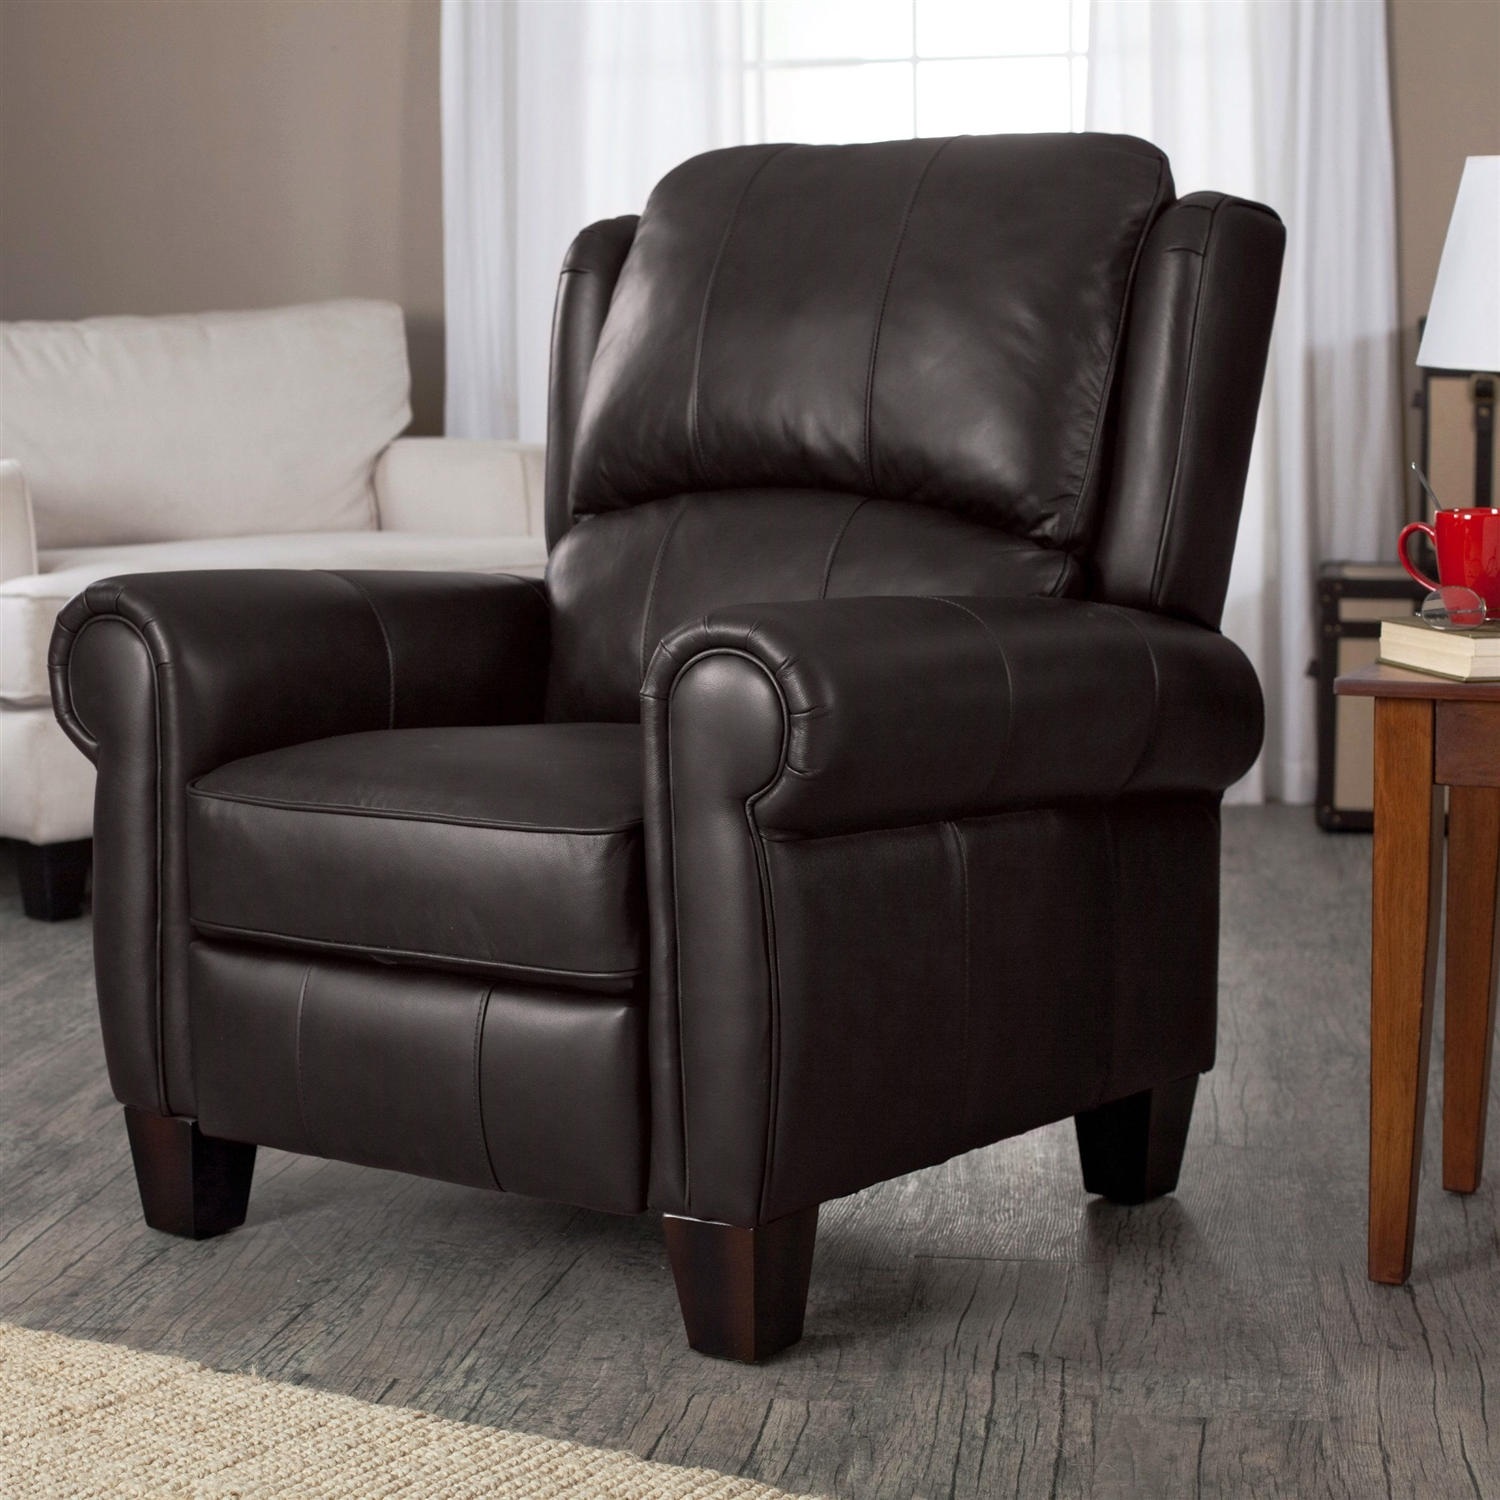 Wingback Recliner Chair High Quality Top Grain Leather Upholstered Wingback Recliner Club Chair In Chocolate Brown